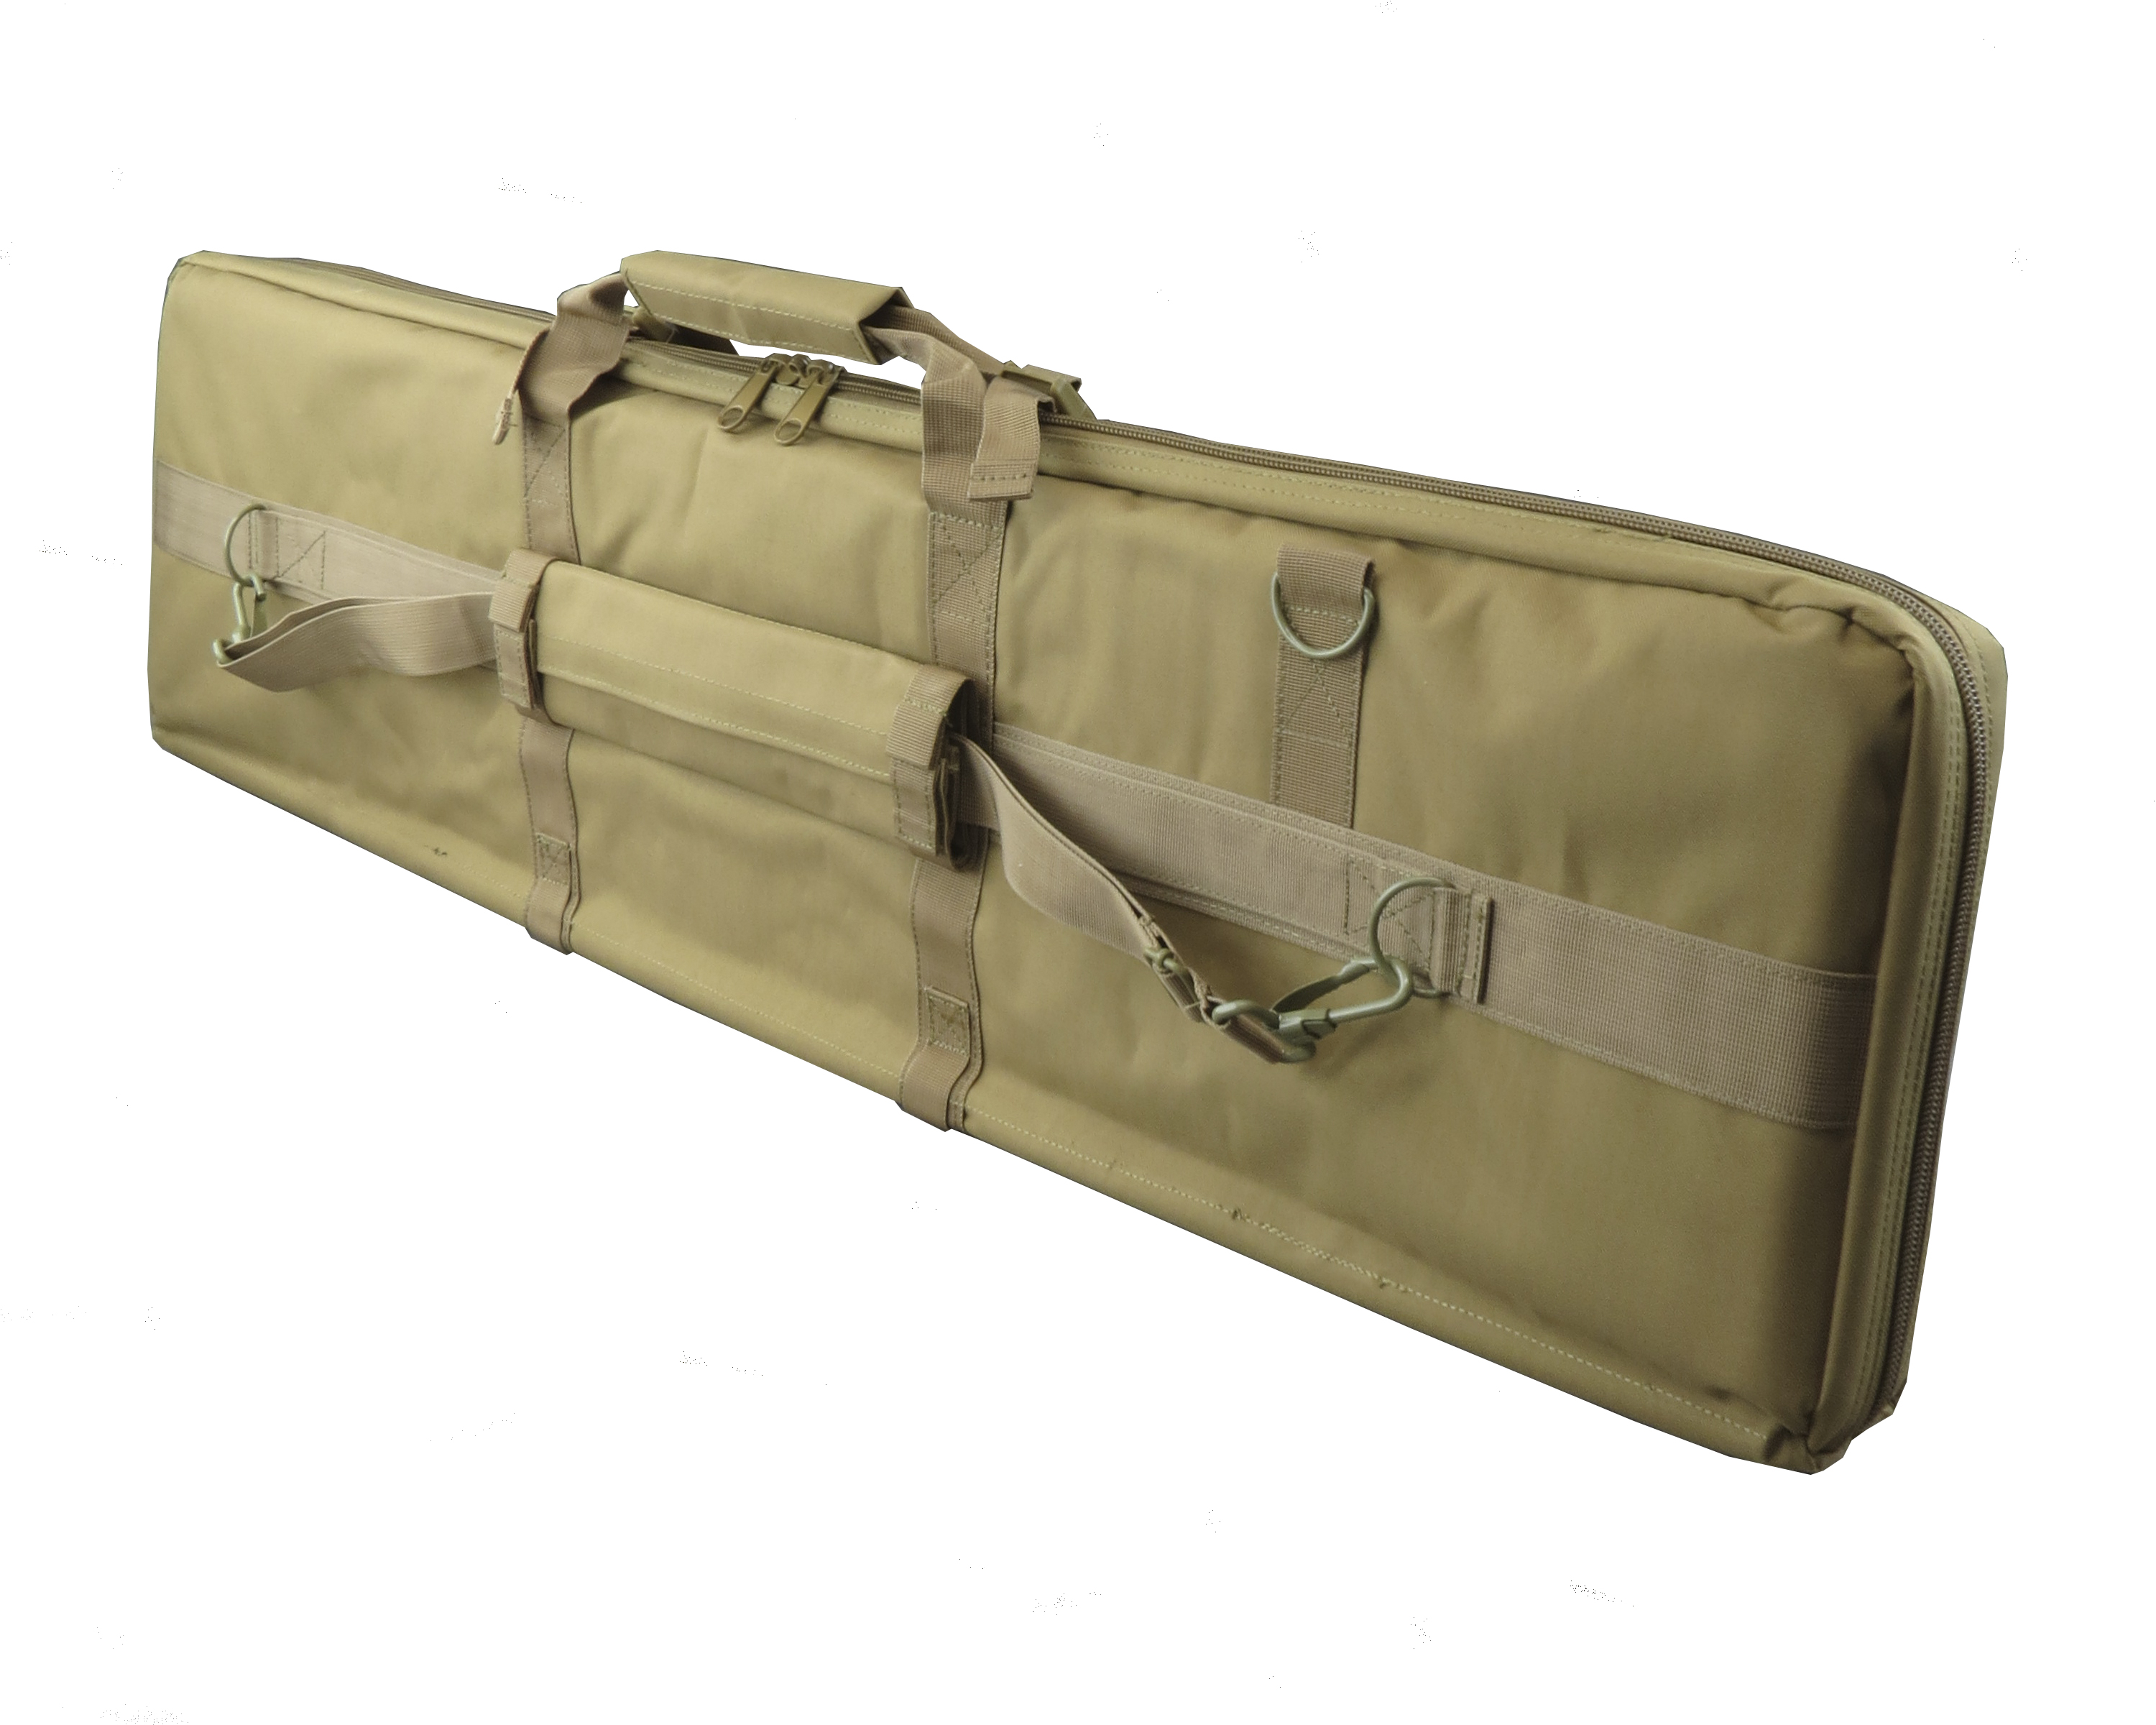 condor_42_single_rifle_case_view_1.jpg